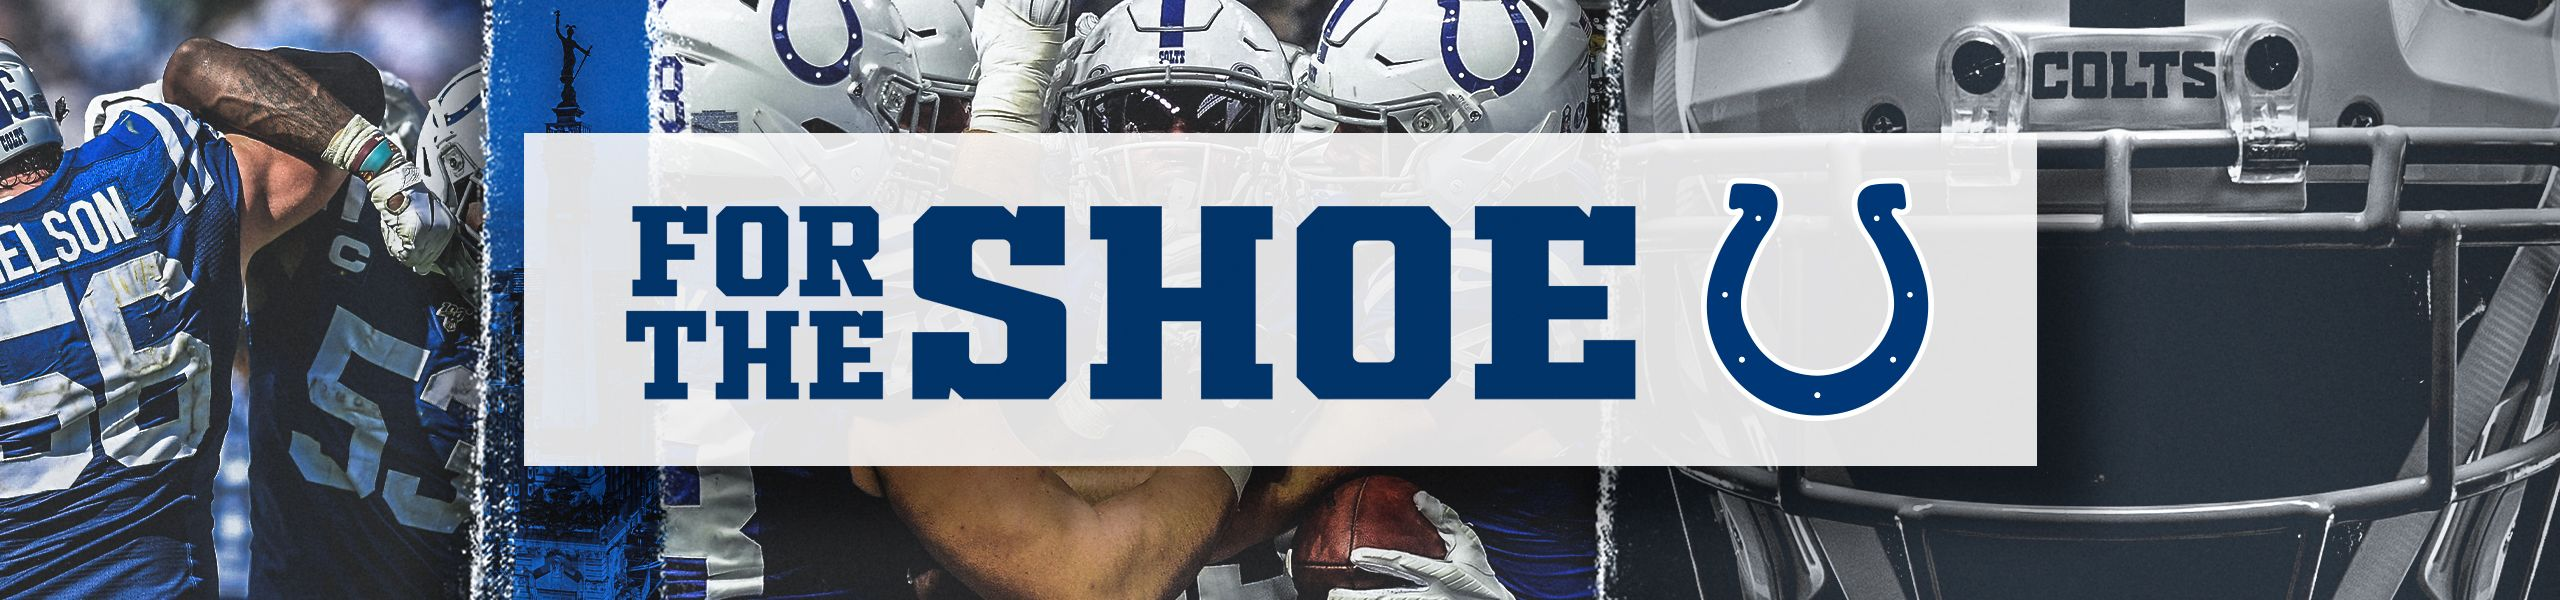 Indianapolis Colts  For The Shoe